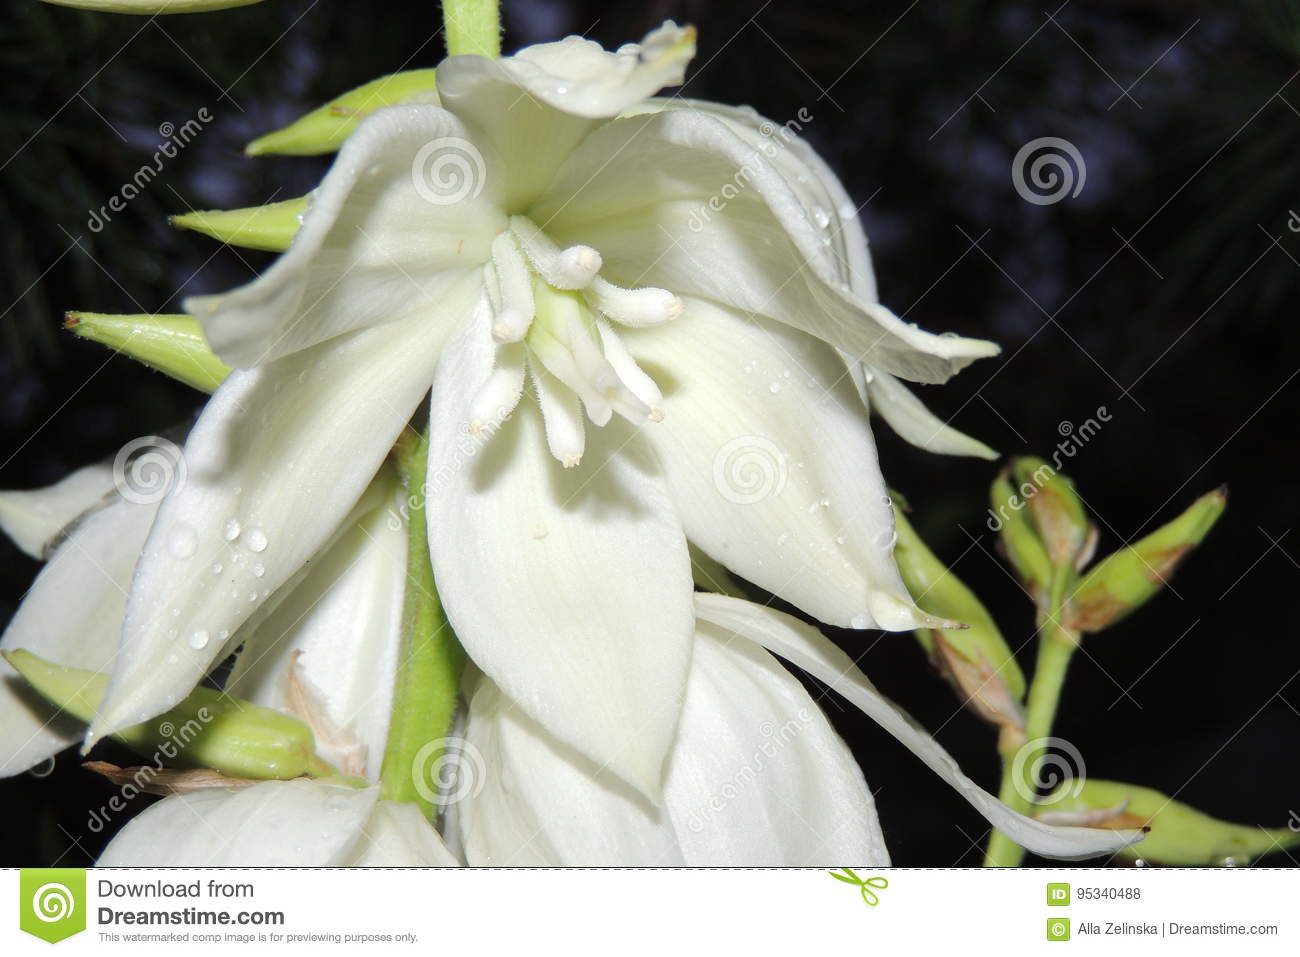 Big white flowers in the garden on a black background stock photo download big white flowers in the garden on a black background stock photo image of mightylinksfo